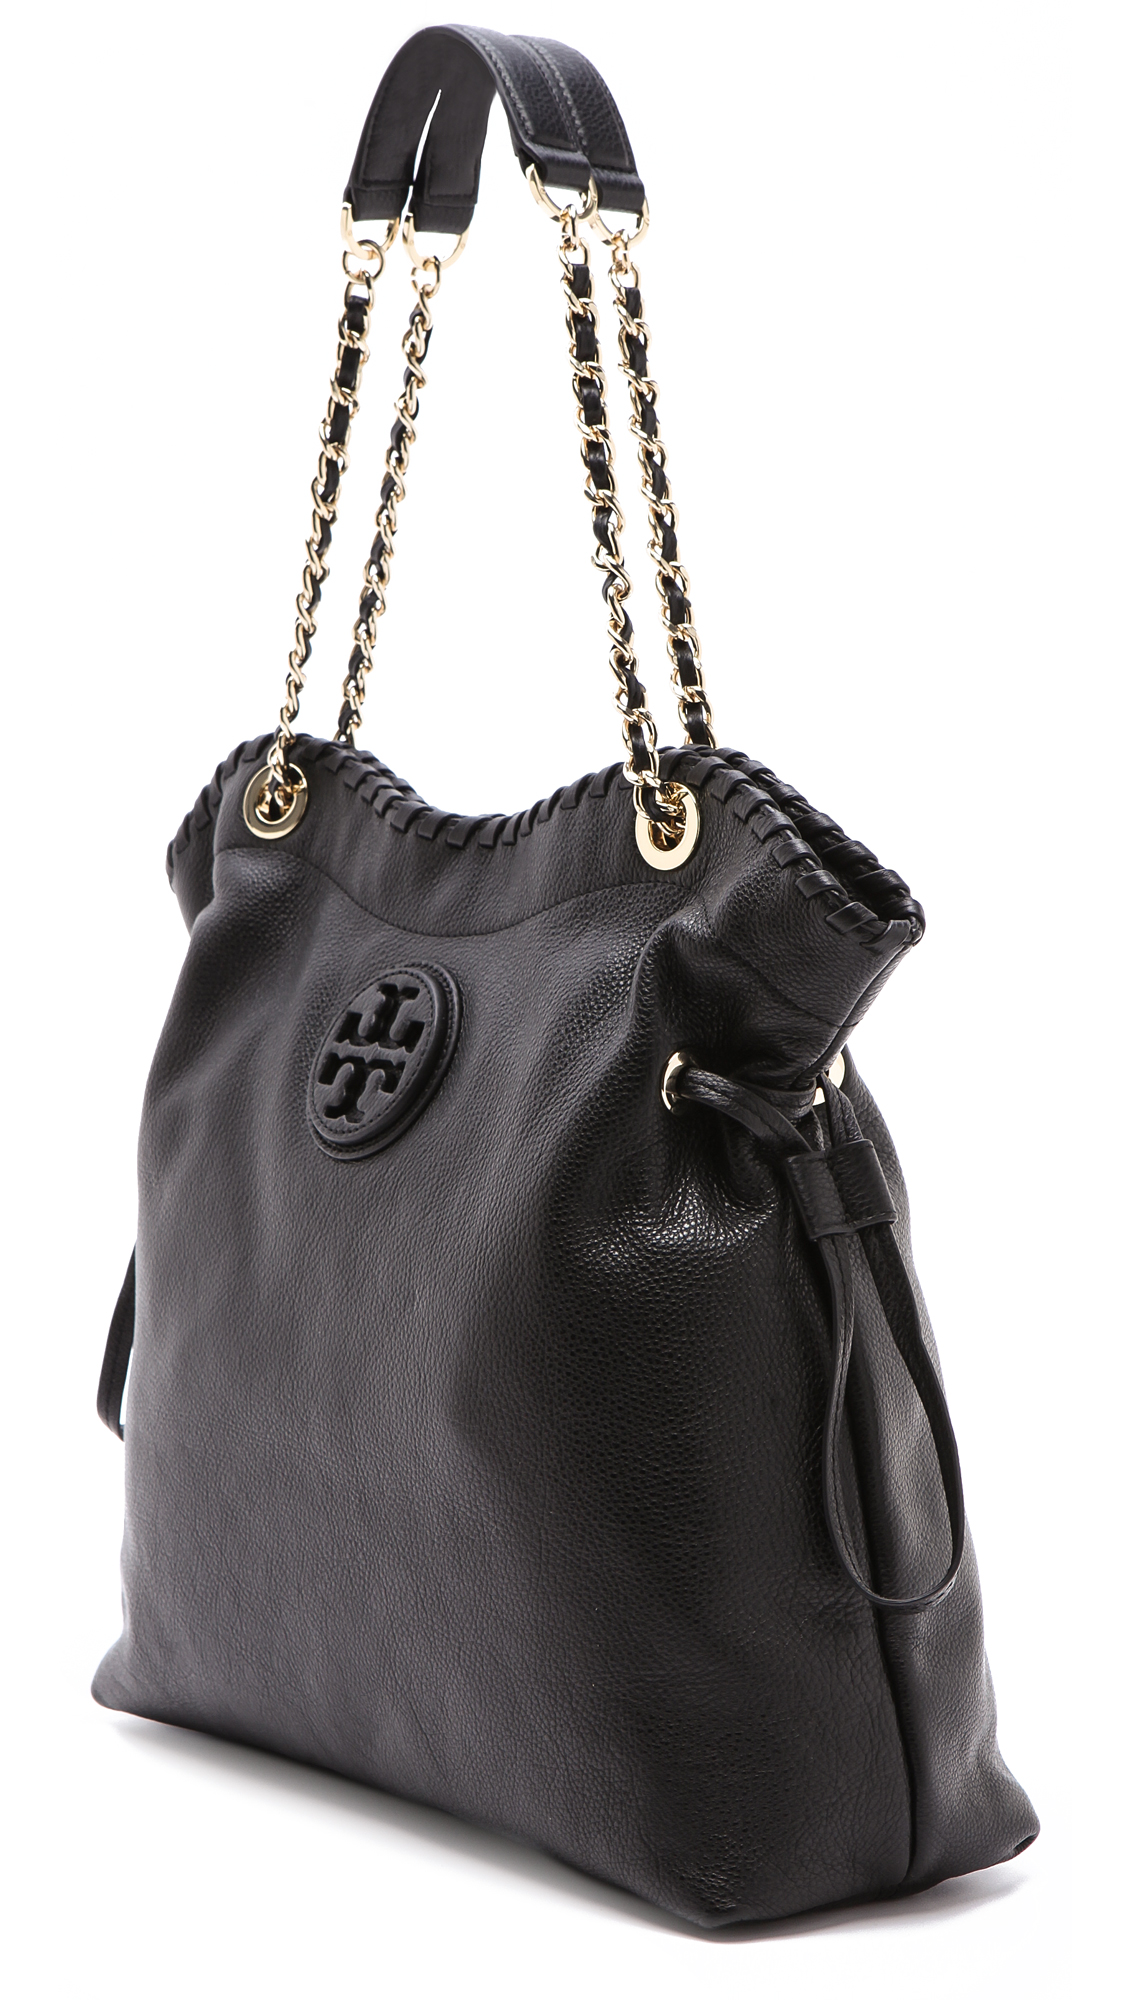 d9c8c2ea52f4 Gallery. Previously sold at  Shopbop · Women s Tory Burch Marion ...